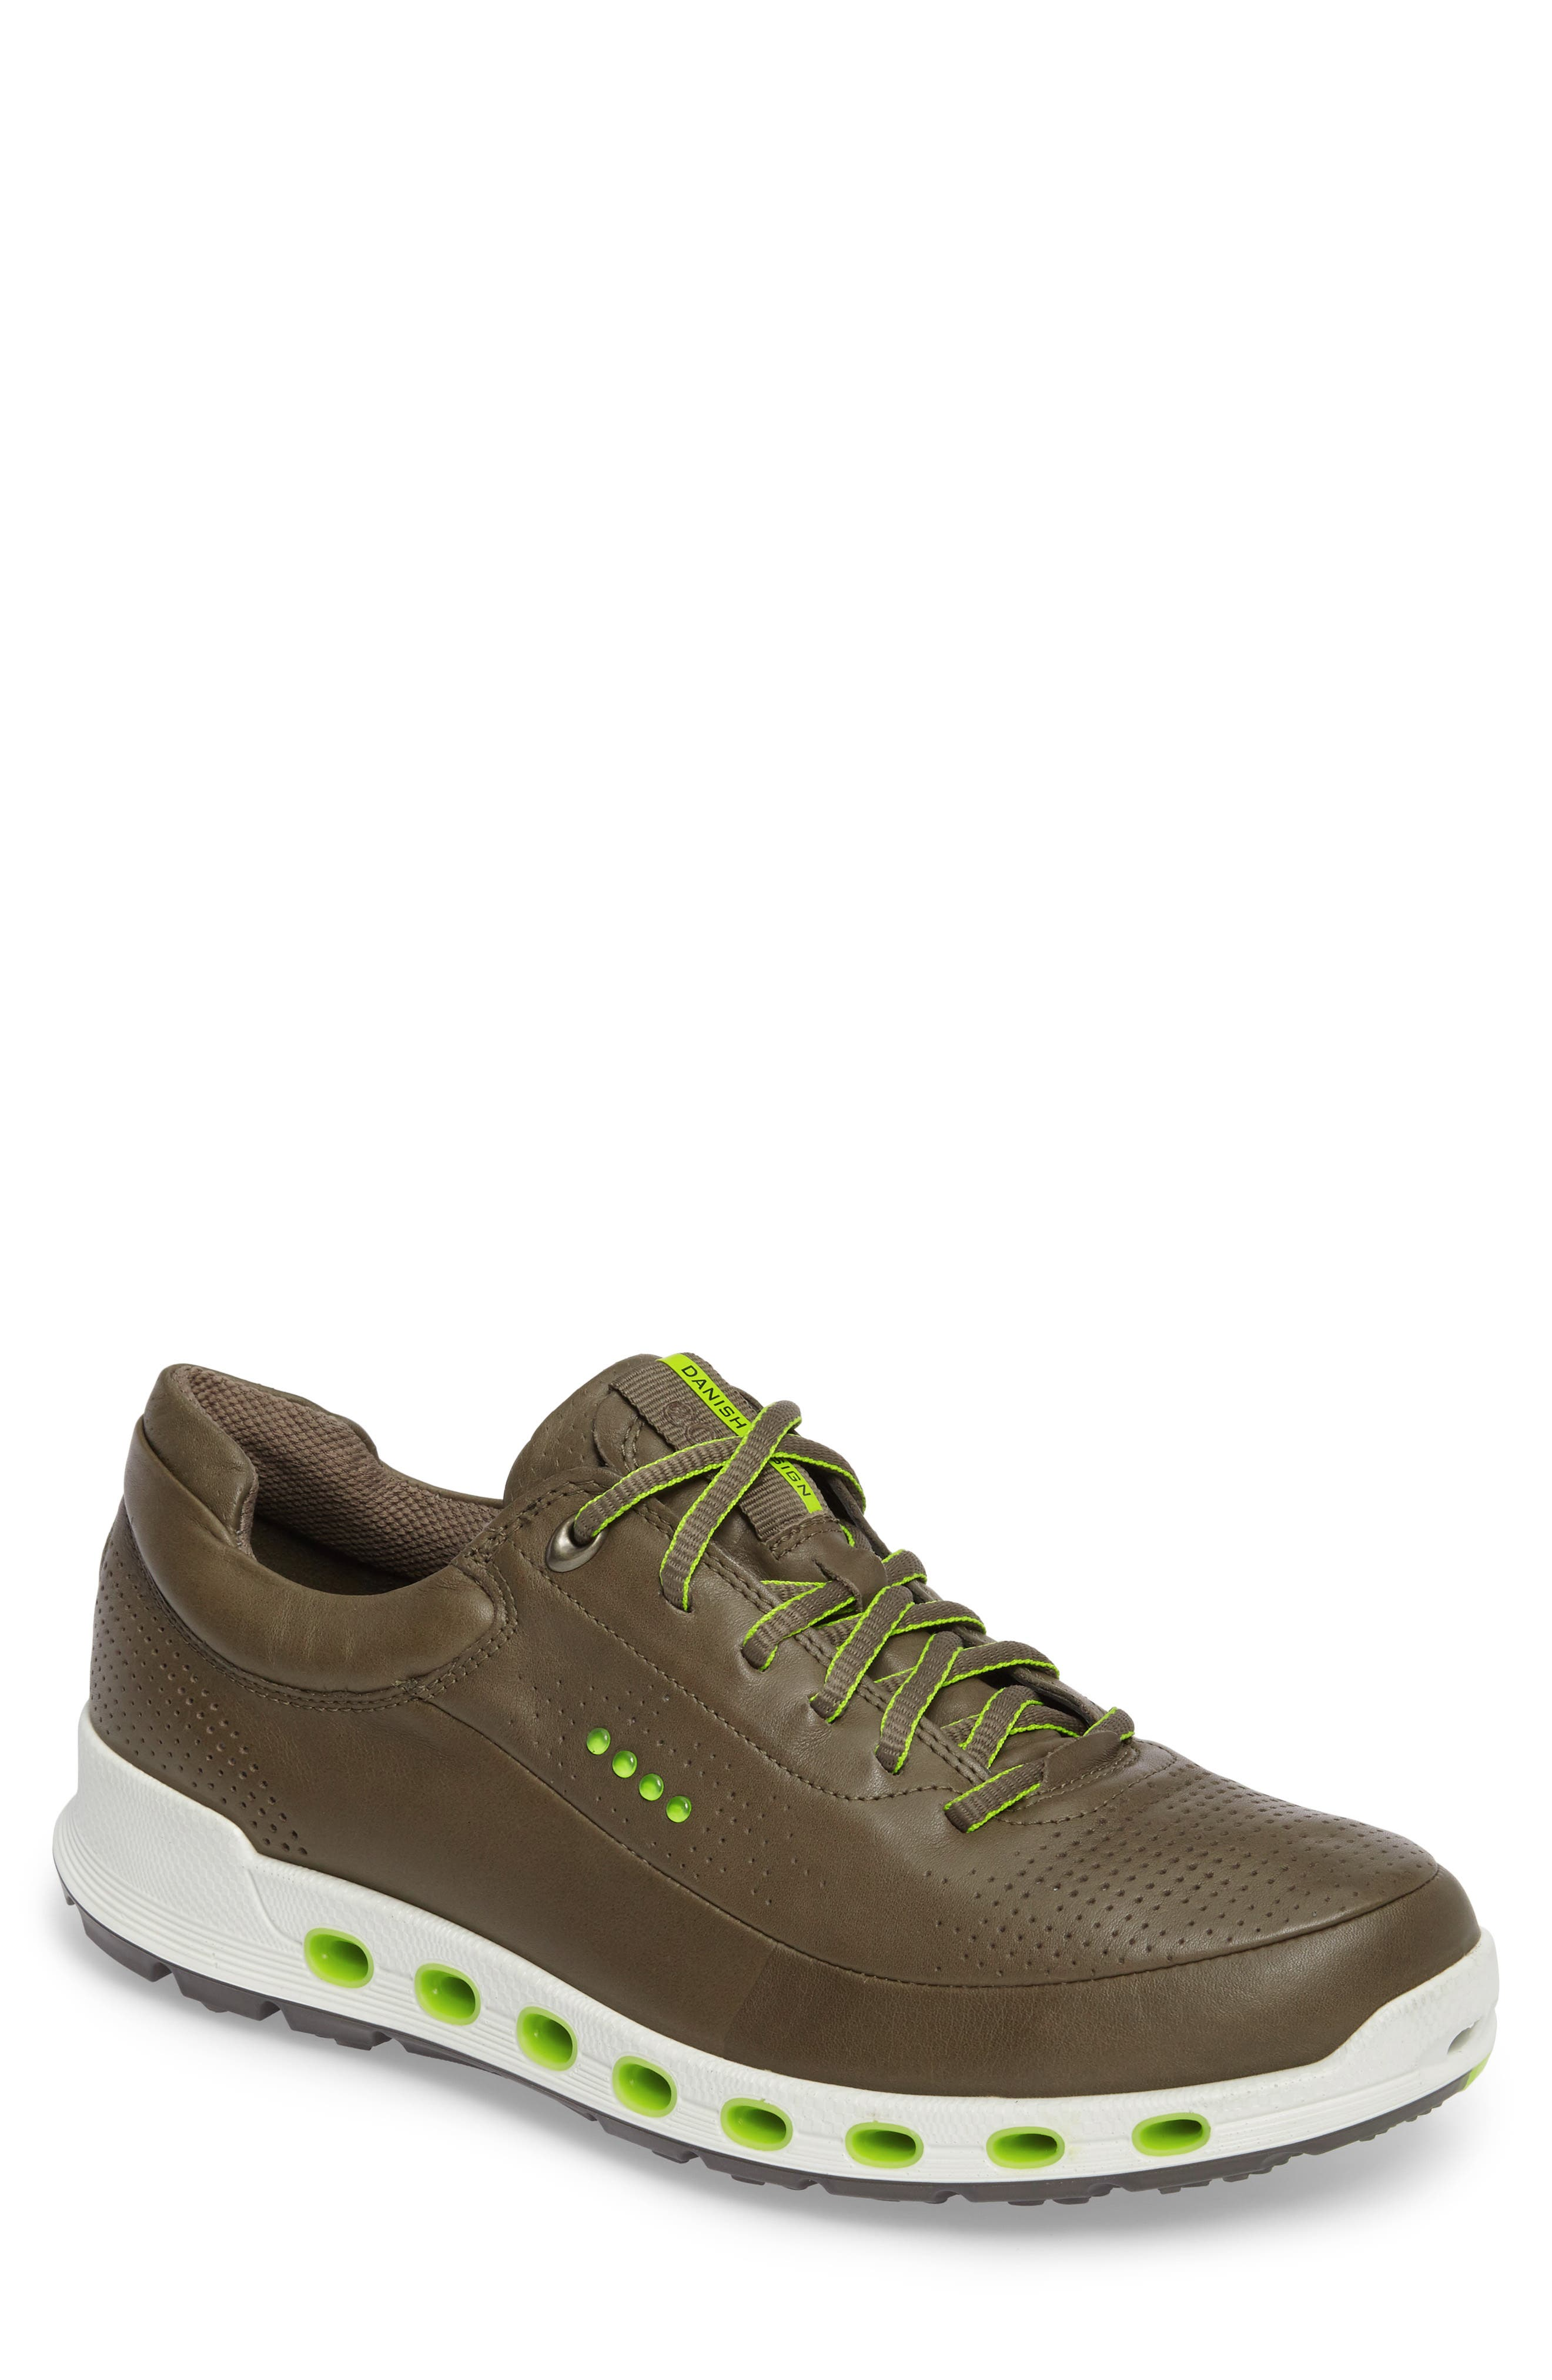 Cool 2.0 Leather GTX Sneaker,                         Main,                         color, Tarmac Leather